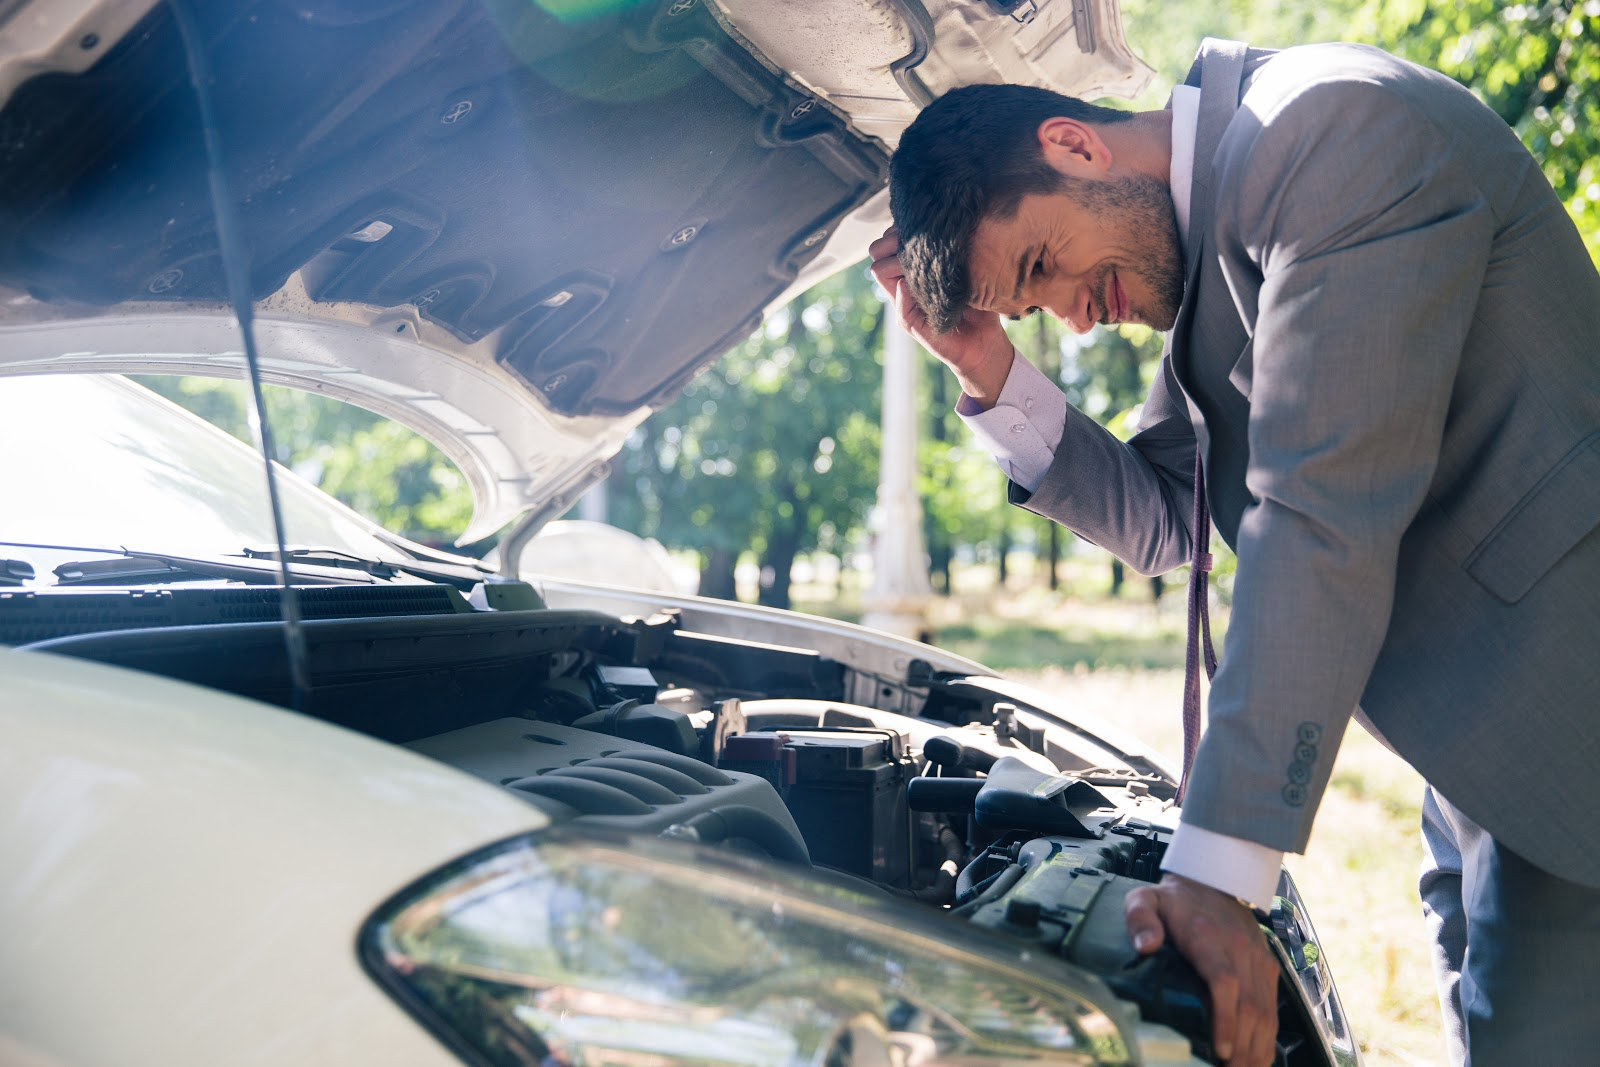 A man in a suit looks under the hood of a broken down car